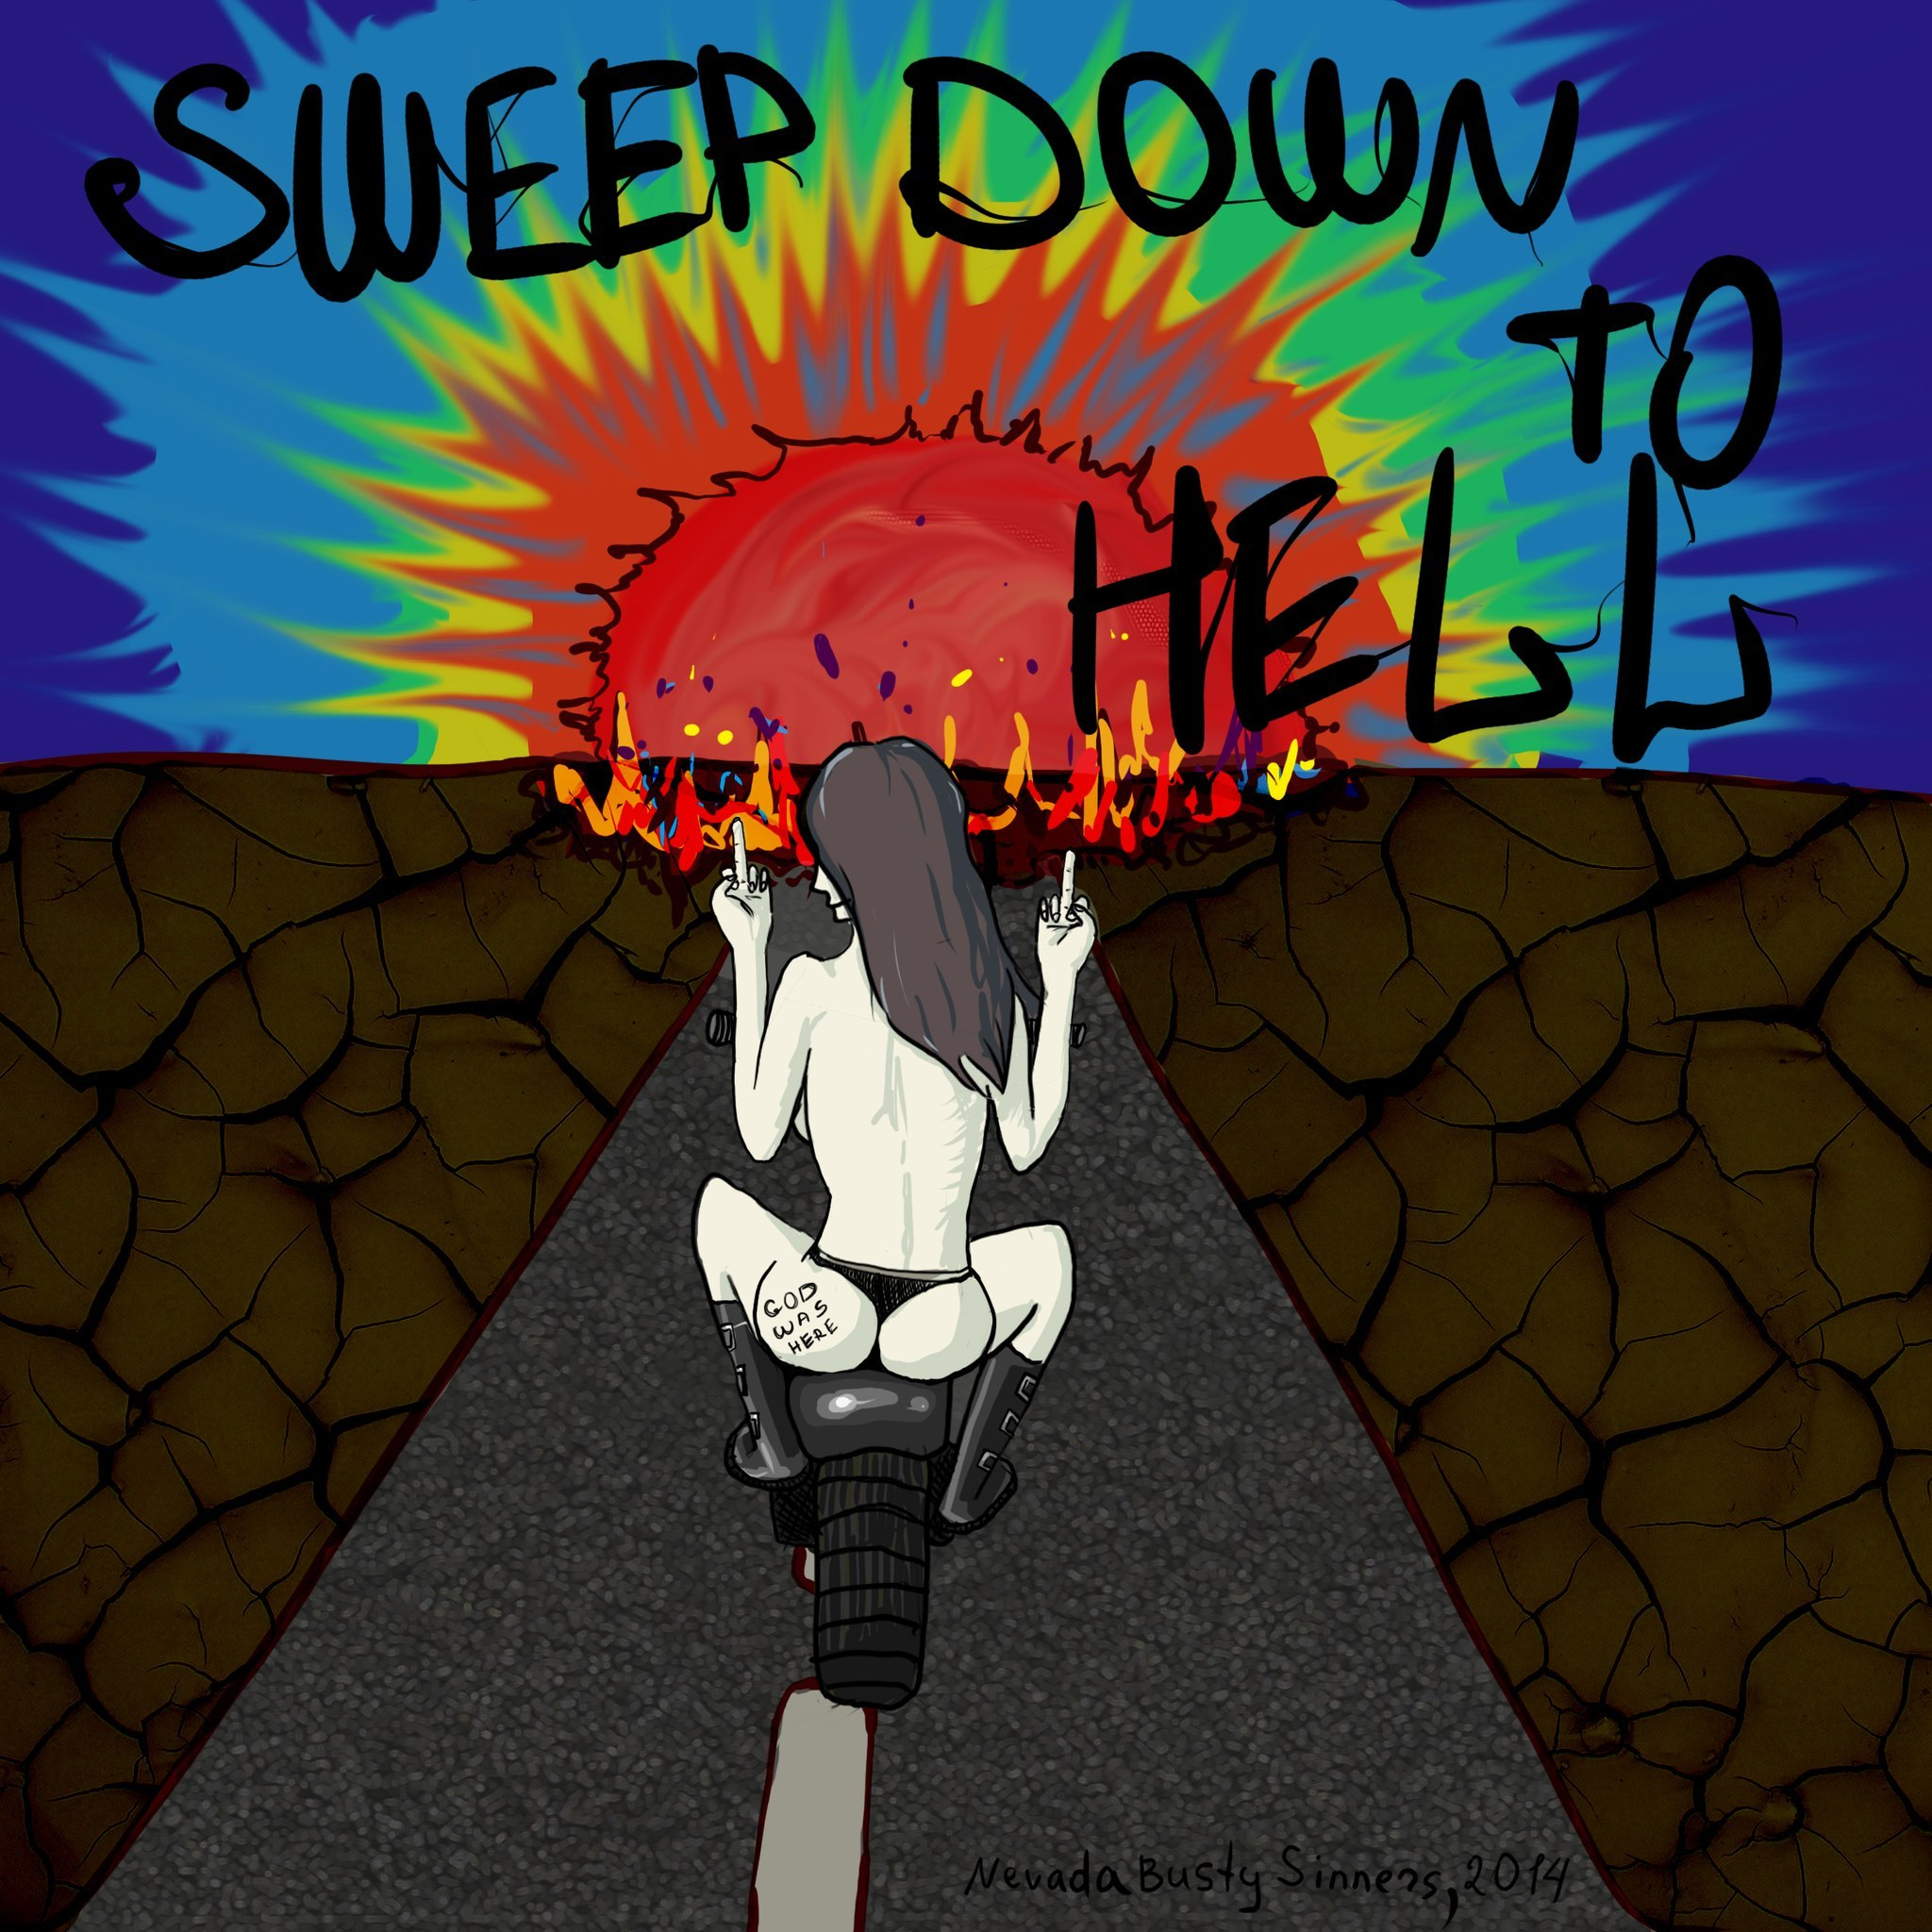 Nevada Busty Sinners – Sweep Down To Hell